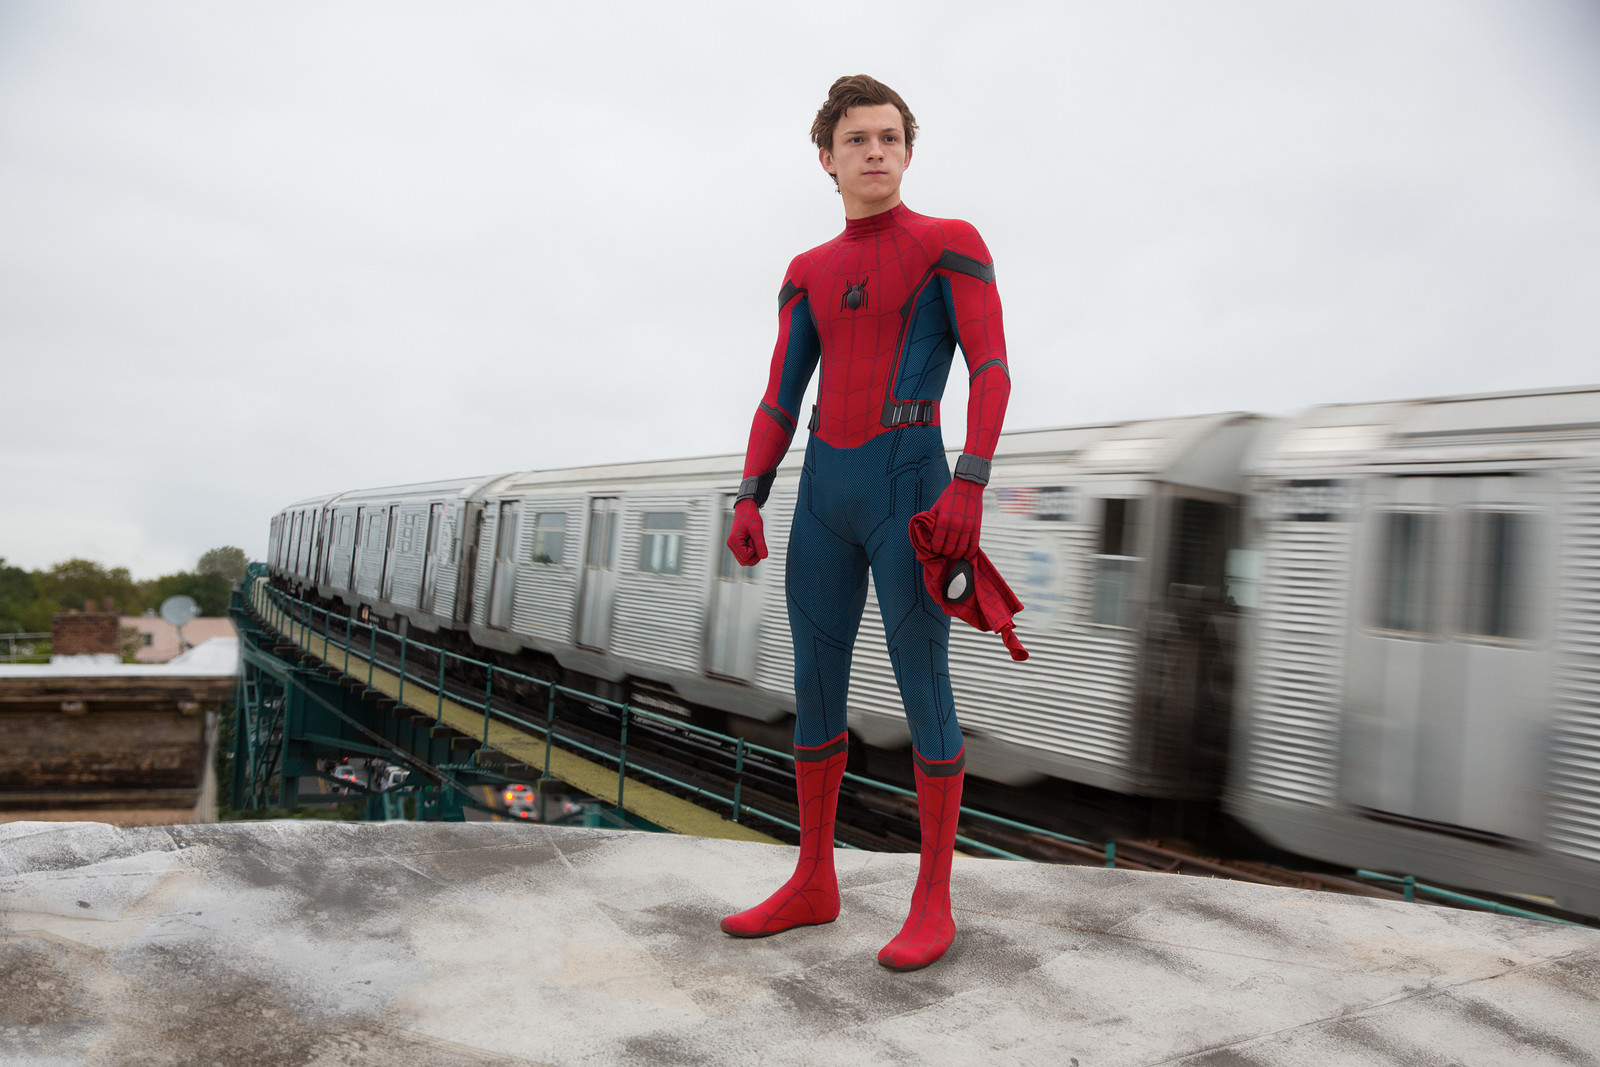 'Spider-Man: Homecoming' image courtesy of Sony